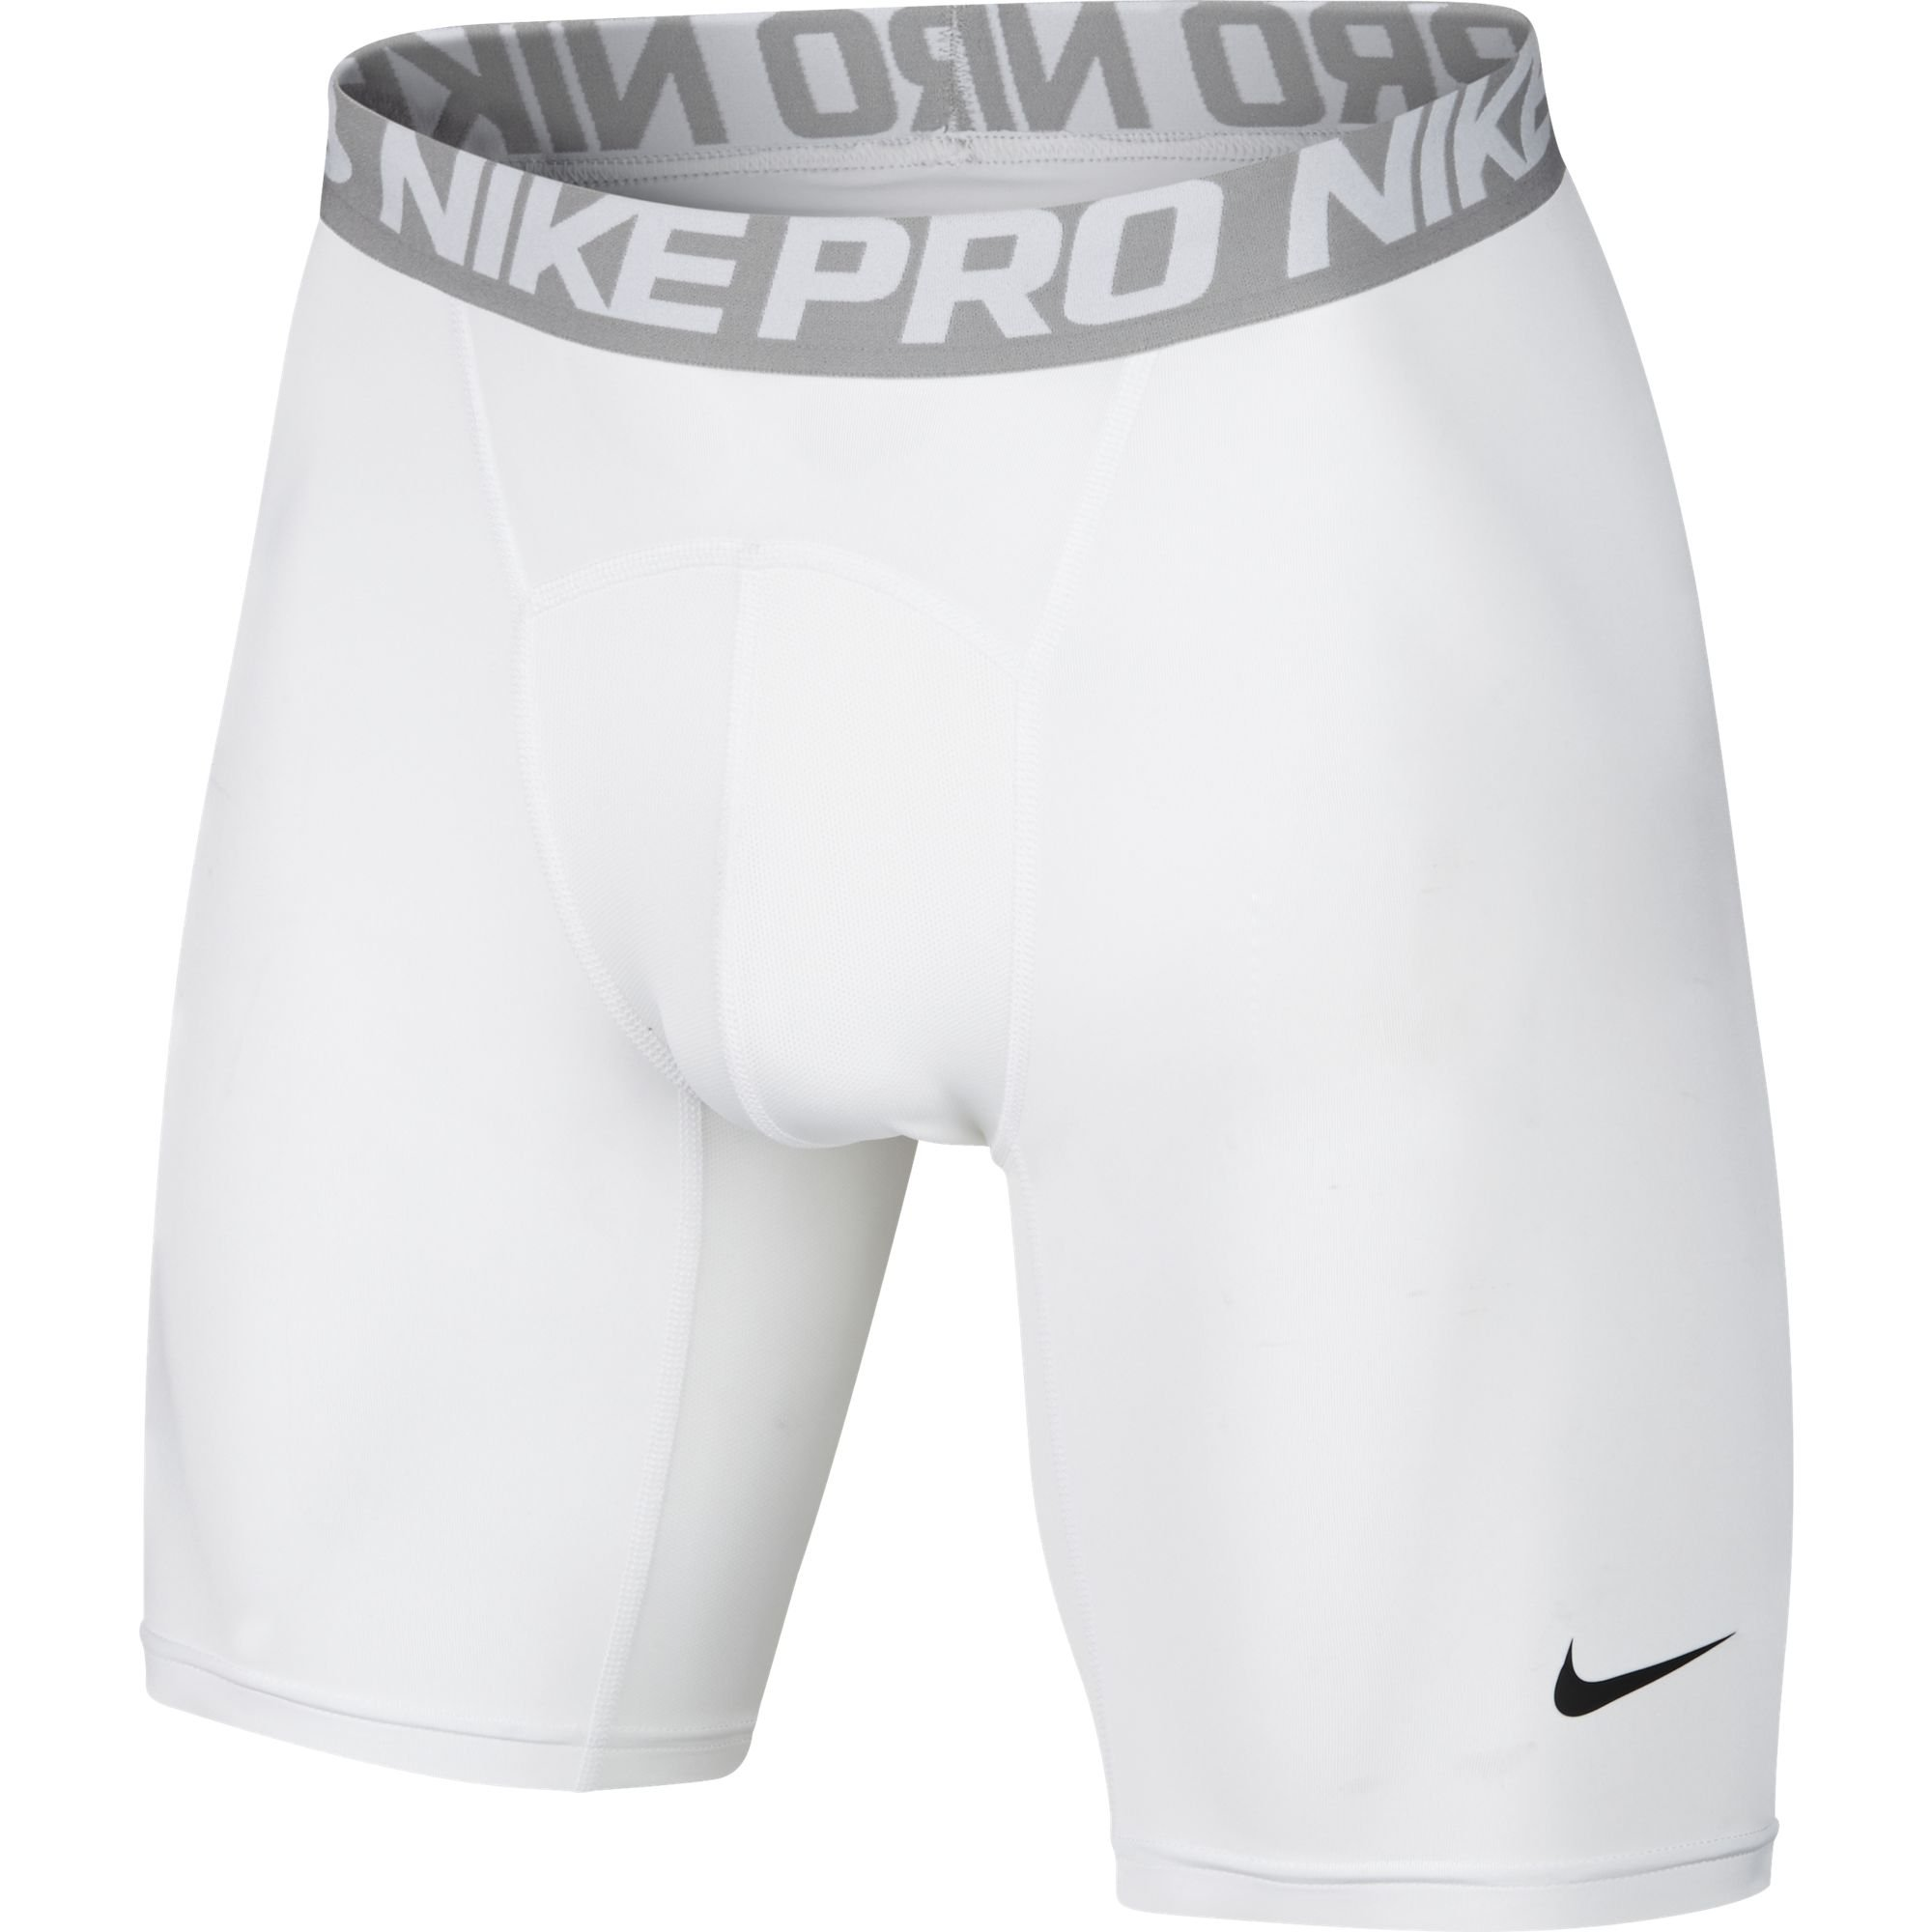 NIKE Men's Pro Shorts, White/Matte Silver/Black, Small